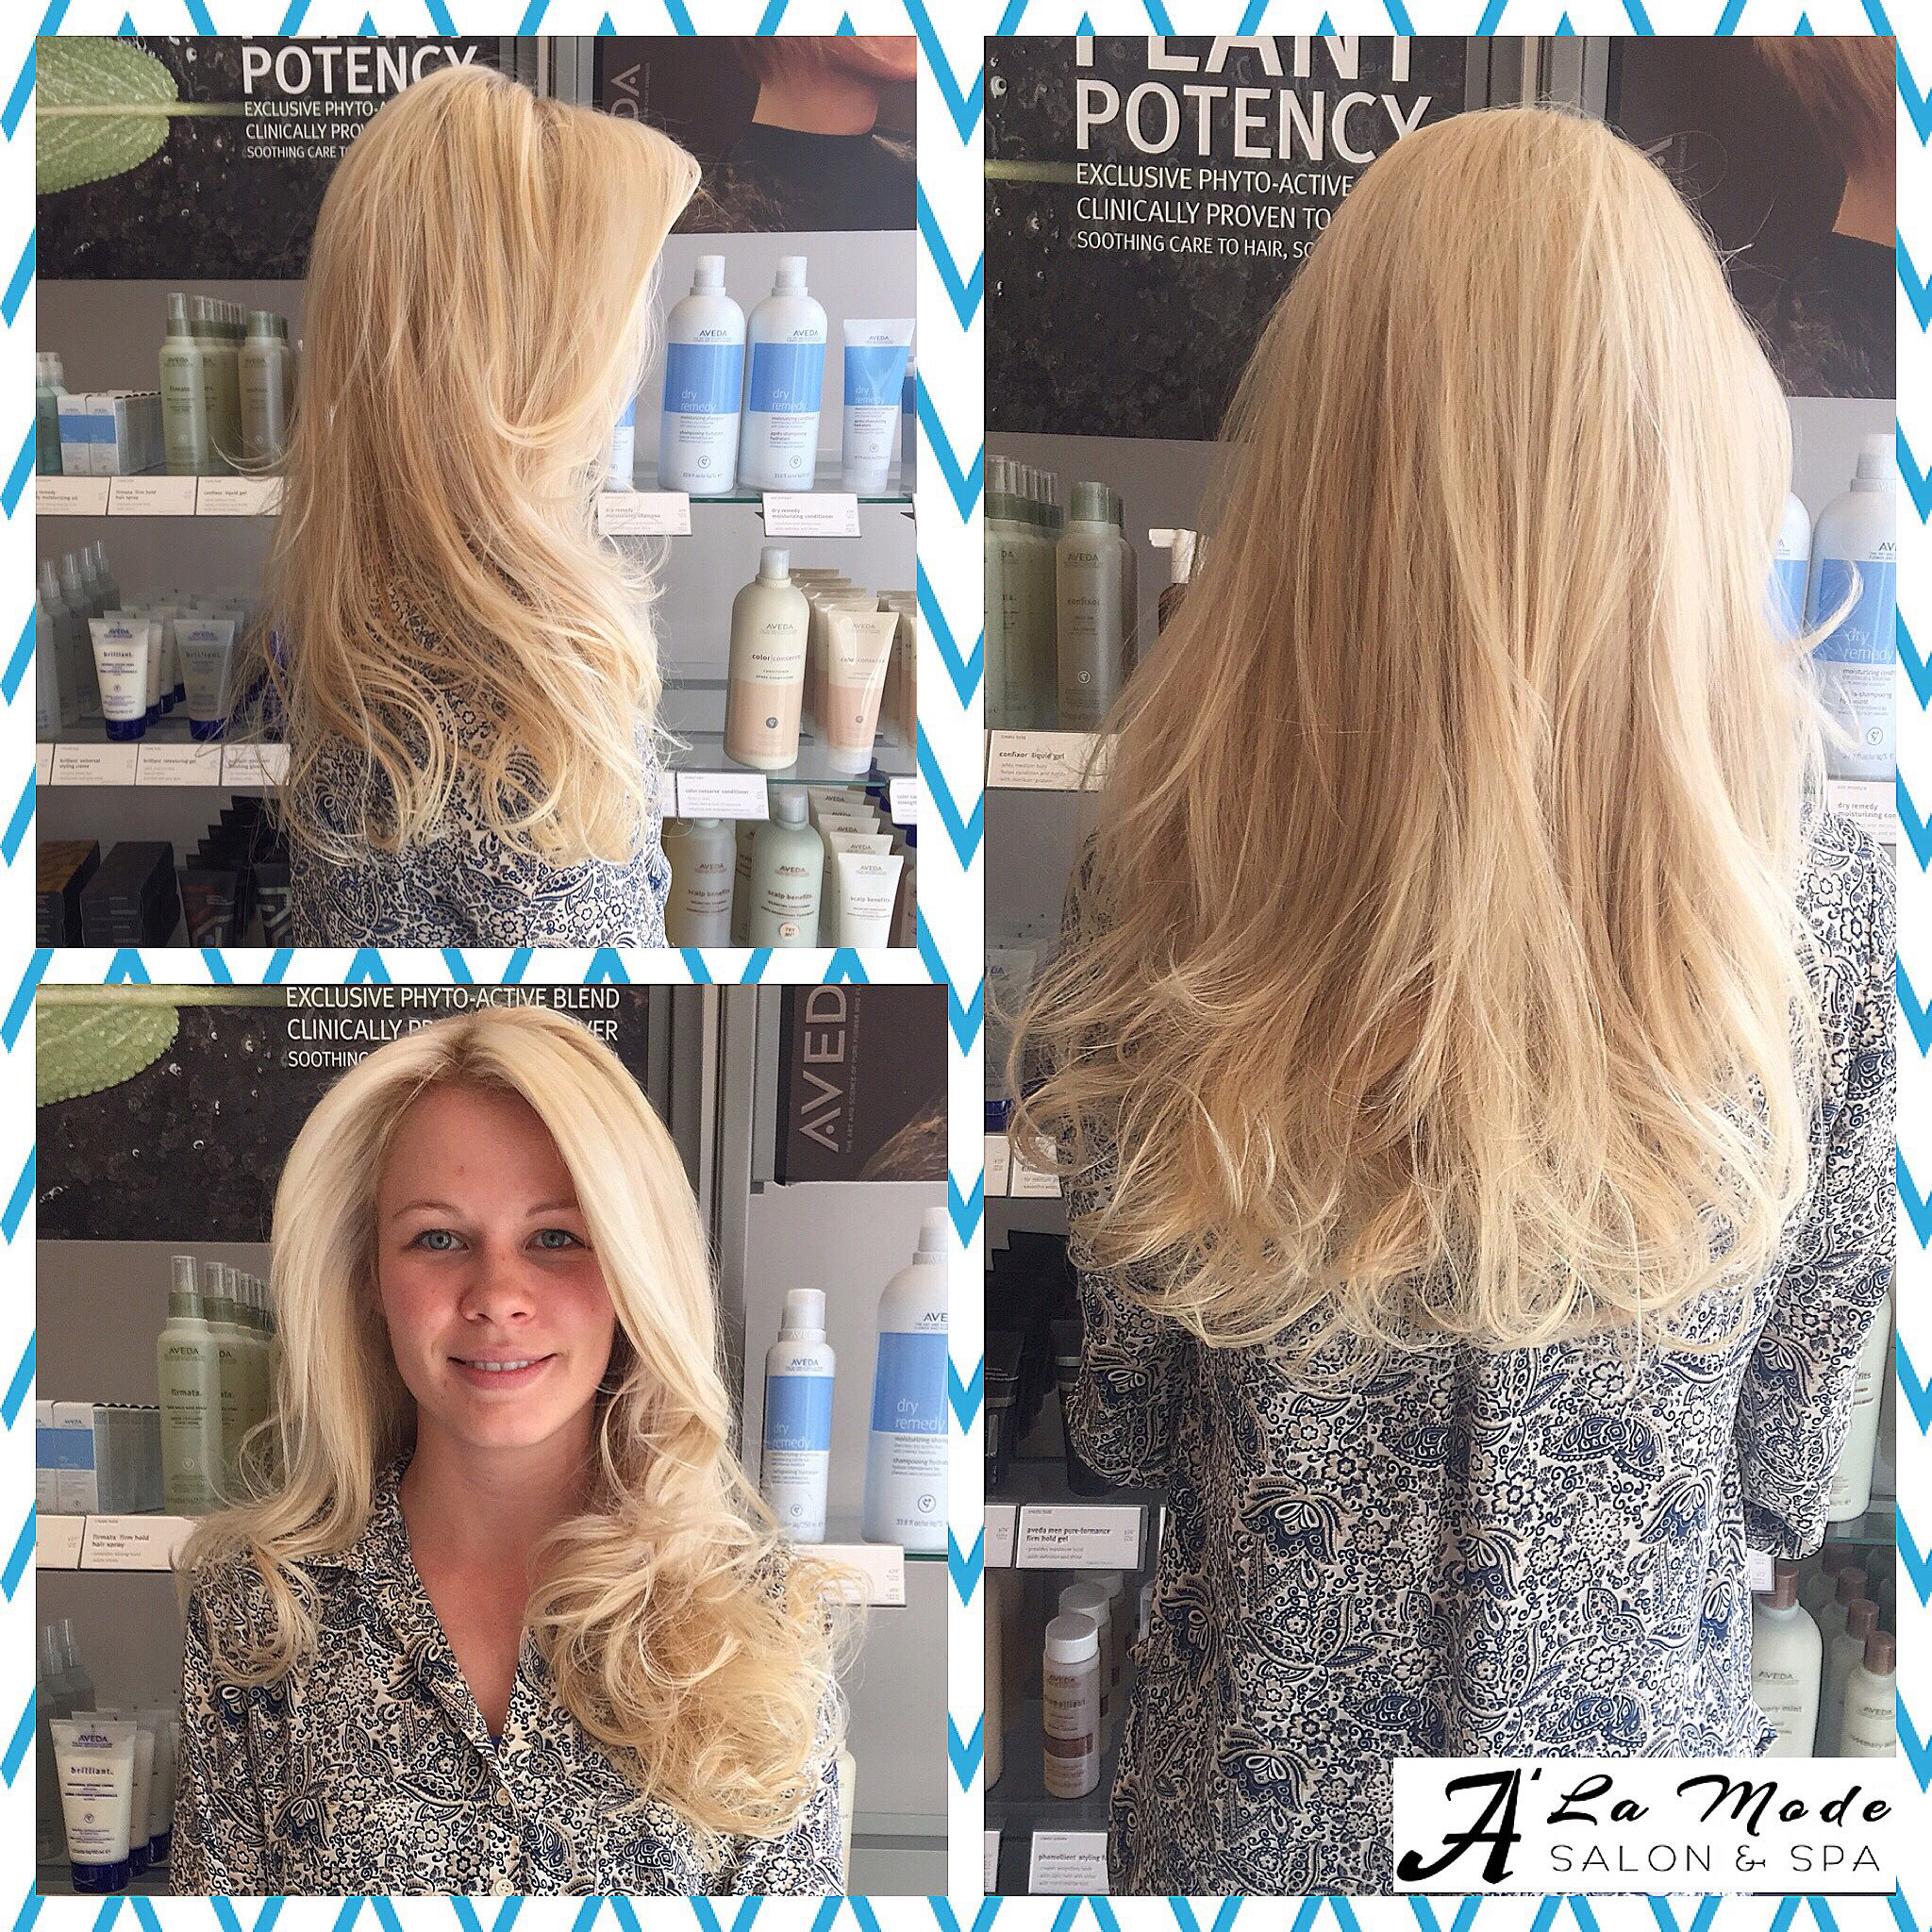 Its finally time to go light again! Change it up with this beautiful baby-blonde highlights, layers and a wavy blowout. Change never looked so good  #baby #blonde #highlights #babyblonde #blondehighlights #golight #lightcolors #season #newhair #makeoever #newstyle #layers #haircut #blowdry #wavy #blowdry #instahair #instacolor #aveda #loreal #oribe #keratincomplex  #nyc #brooklyn #bayridge #alamodesalonandspa #hairsalon #7184911100